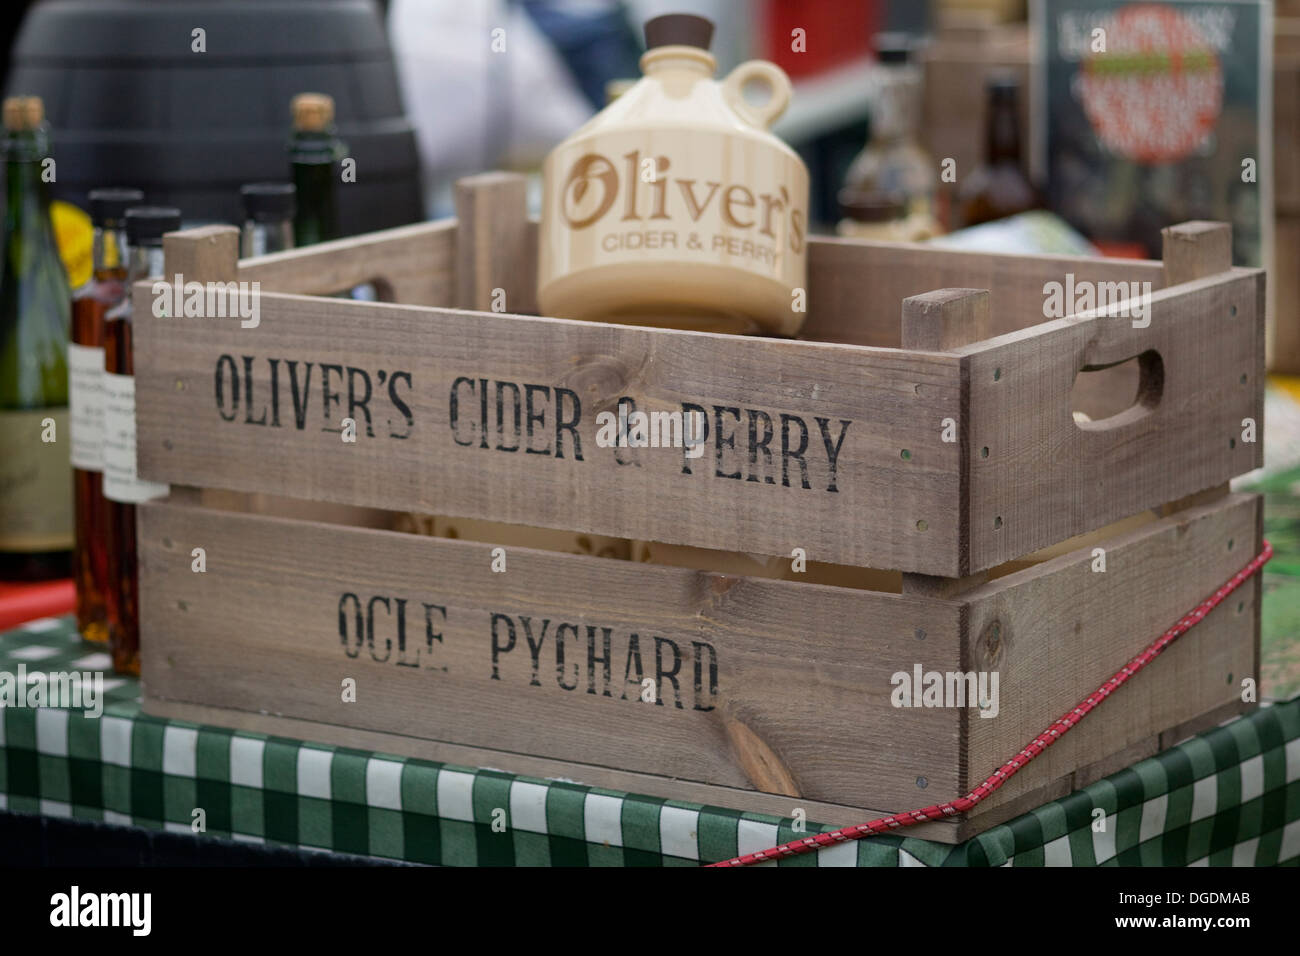 Wooden Create with Olivers Cider and Perry Flagon Stock Photo